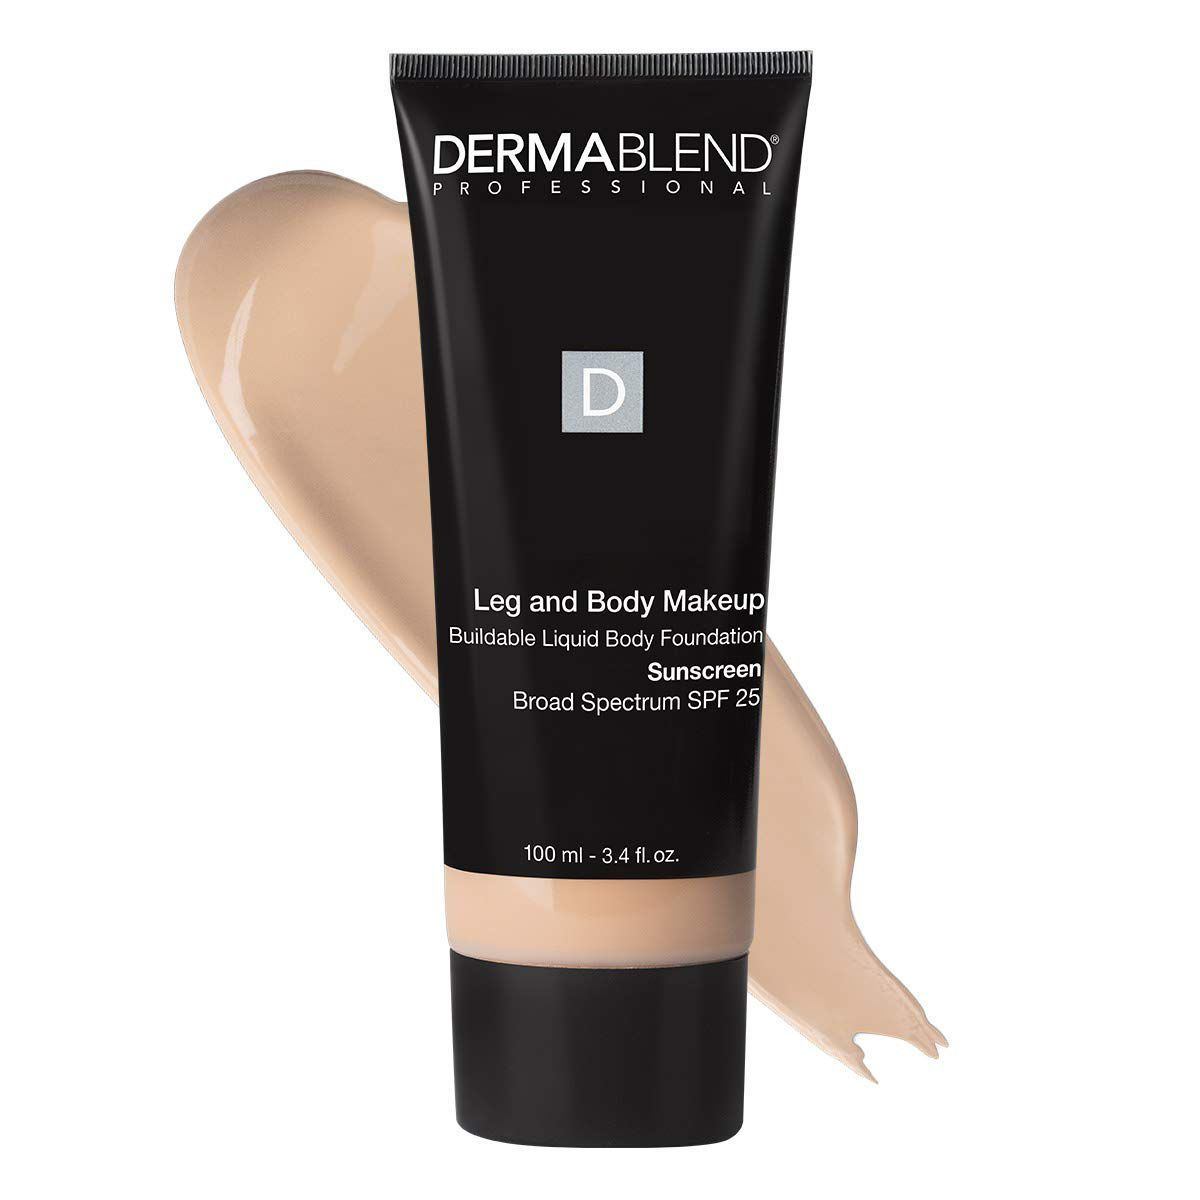 Dermablend Leg and Body Makeup Foundation